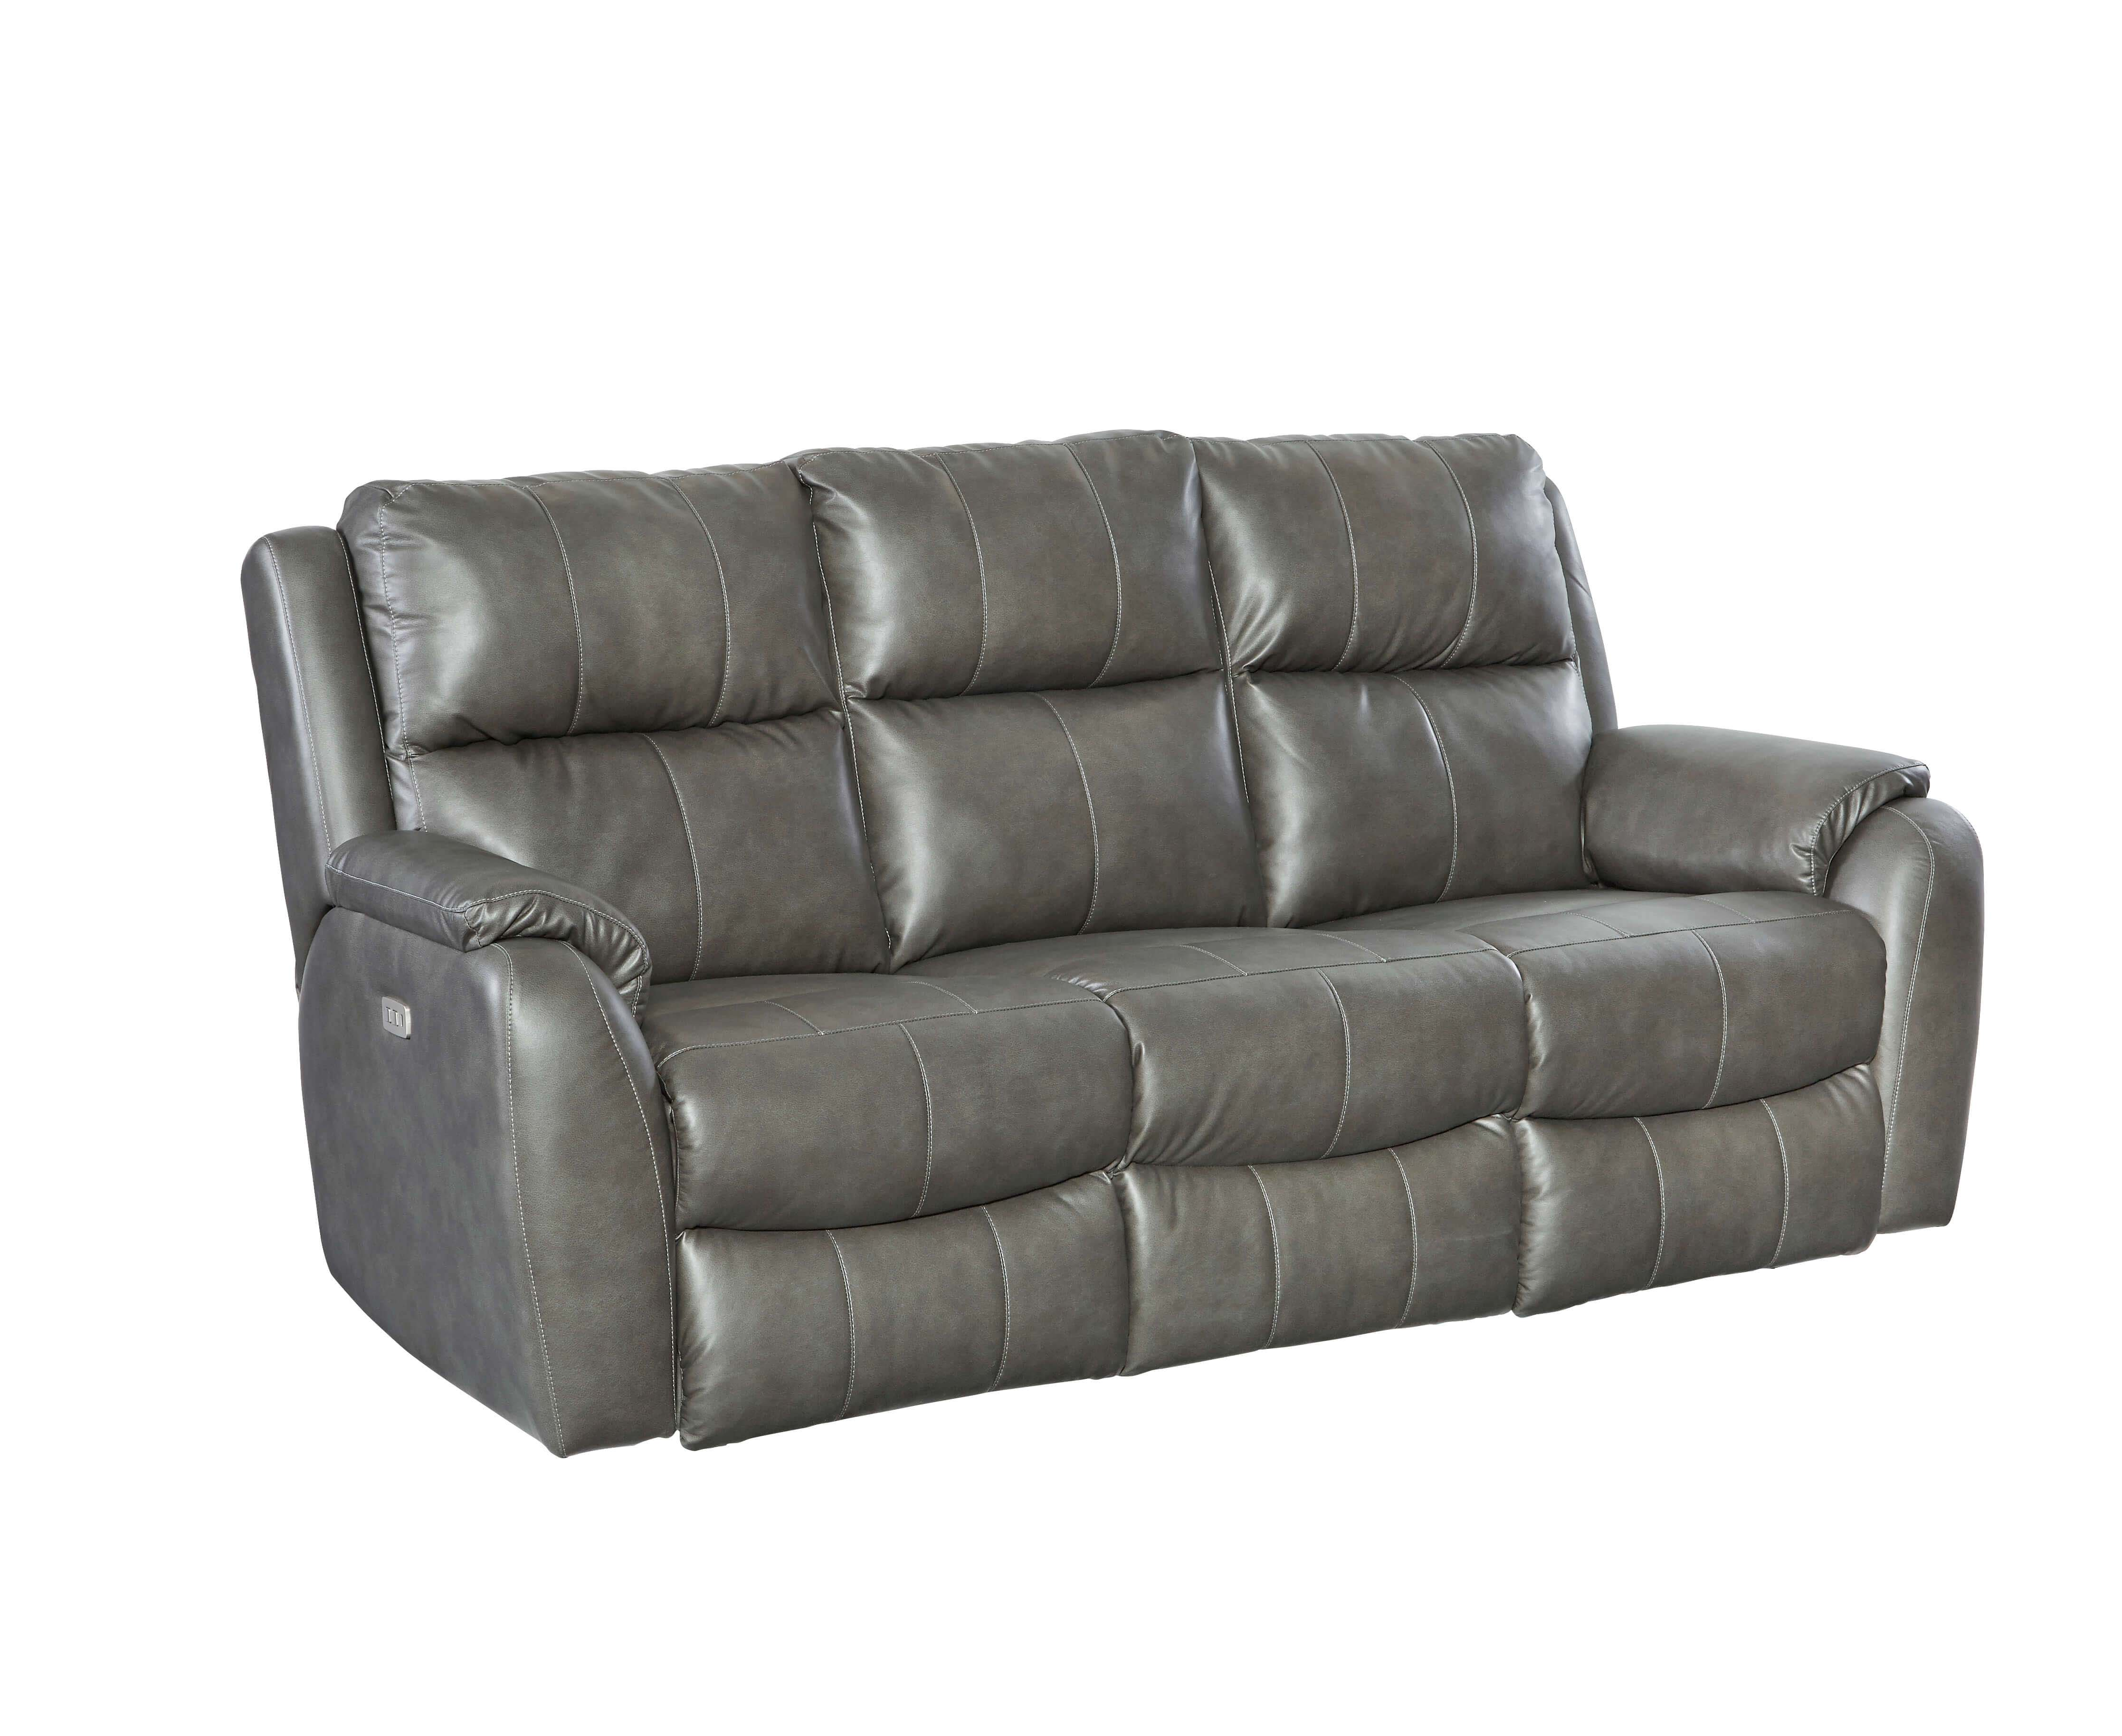 332-MARQUIS-IN-207-14-OBSESSION-SLATE-SOFA-SWP-THS